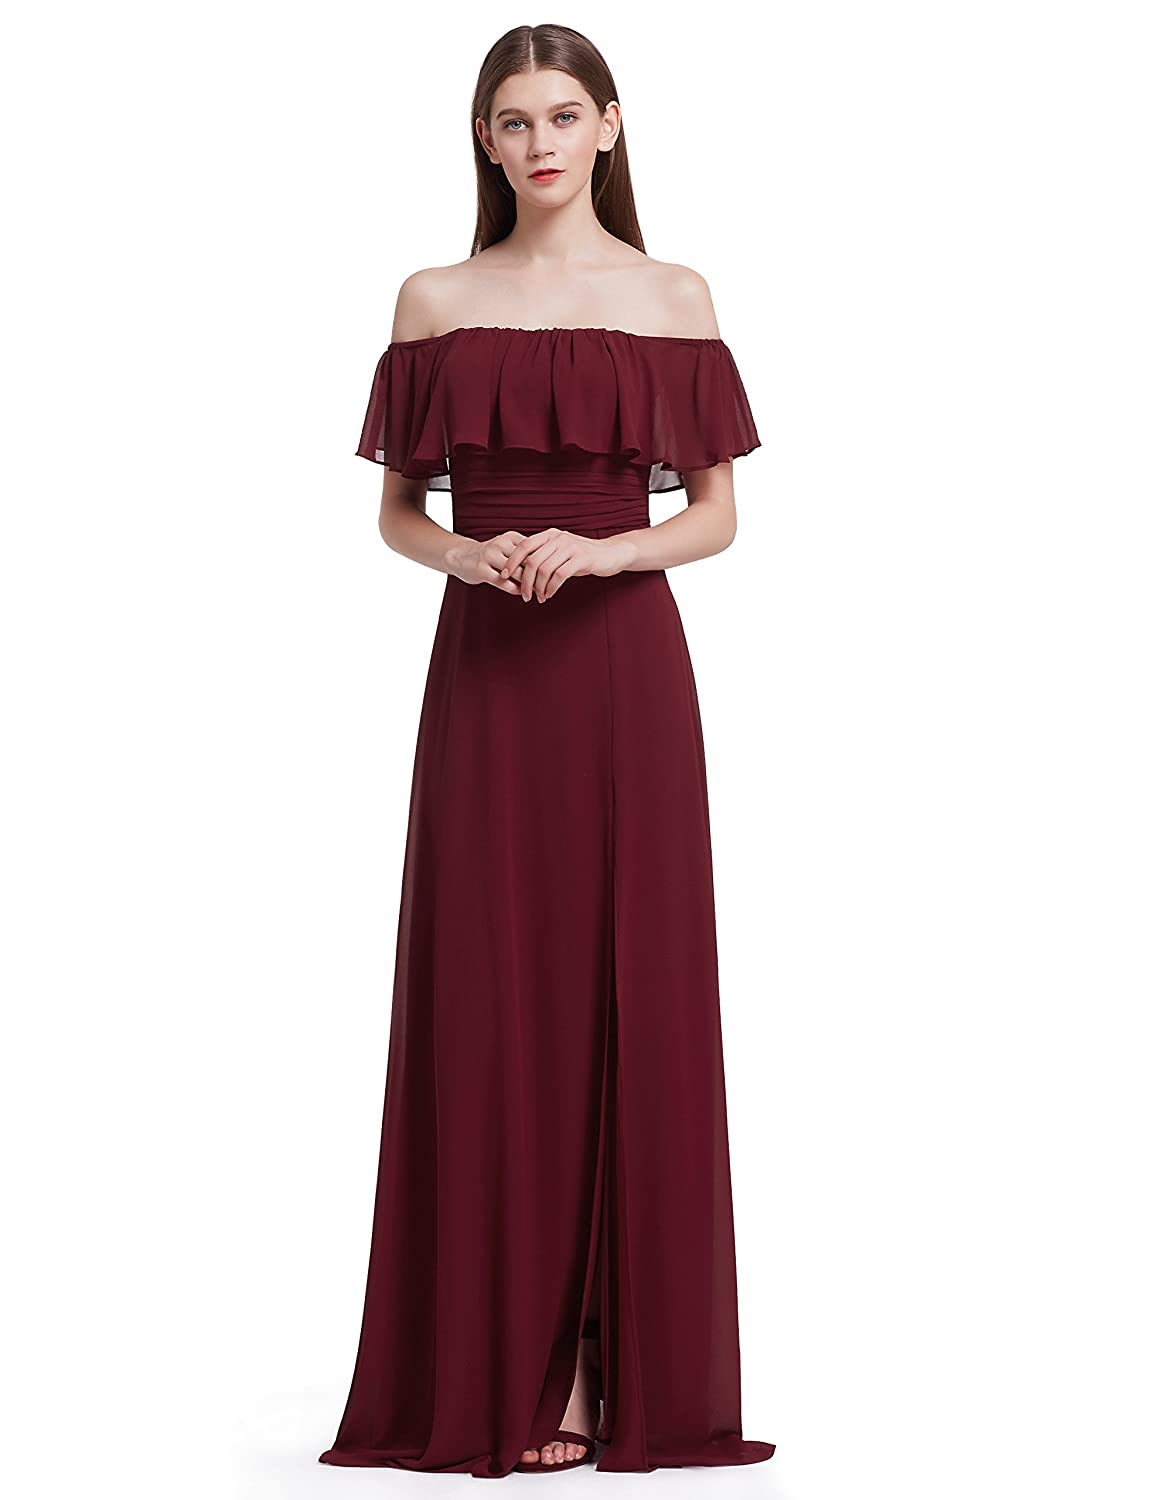 ebf253ba38b Ever-Pretty Womens Elegant Sleeveless Floor Length Ruffles Chiffon  Bridesmaids Dress 07201 at Amazon Women s Clothing store